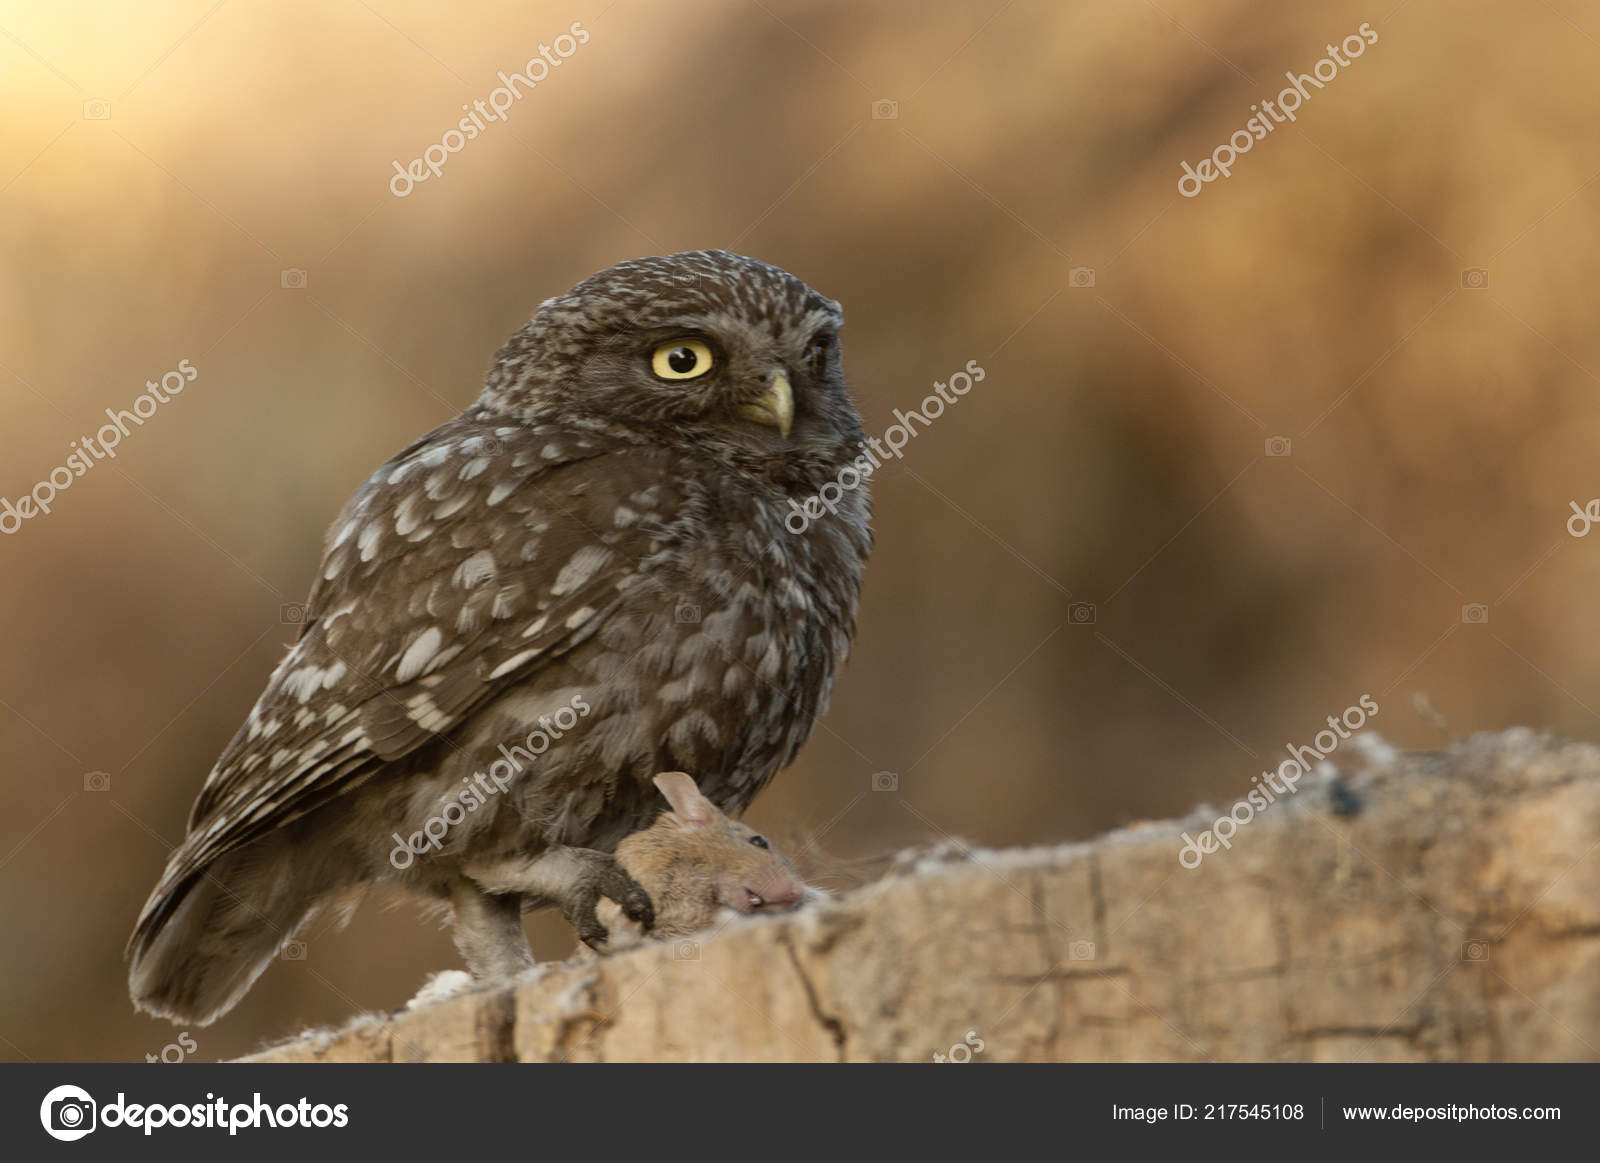 Image of: Prey Little Owl Nocturnal Birds Prey Athene Noctua Perched Branch Mouse Stock Photo Depositphotos Little Owl Nocturnal Birds Prey Athene Noctua Perched Branch Mouse